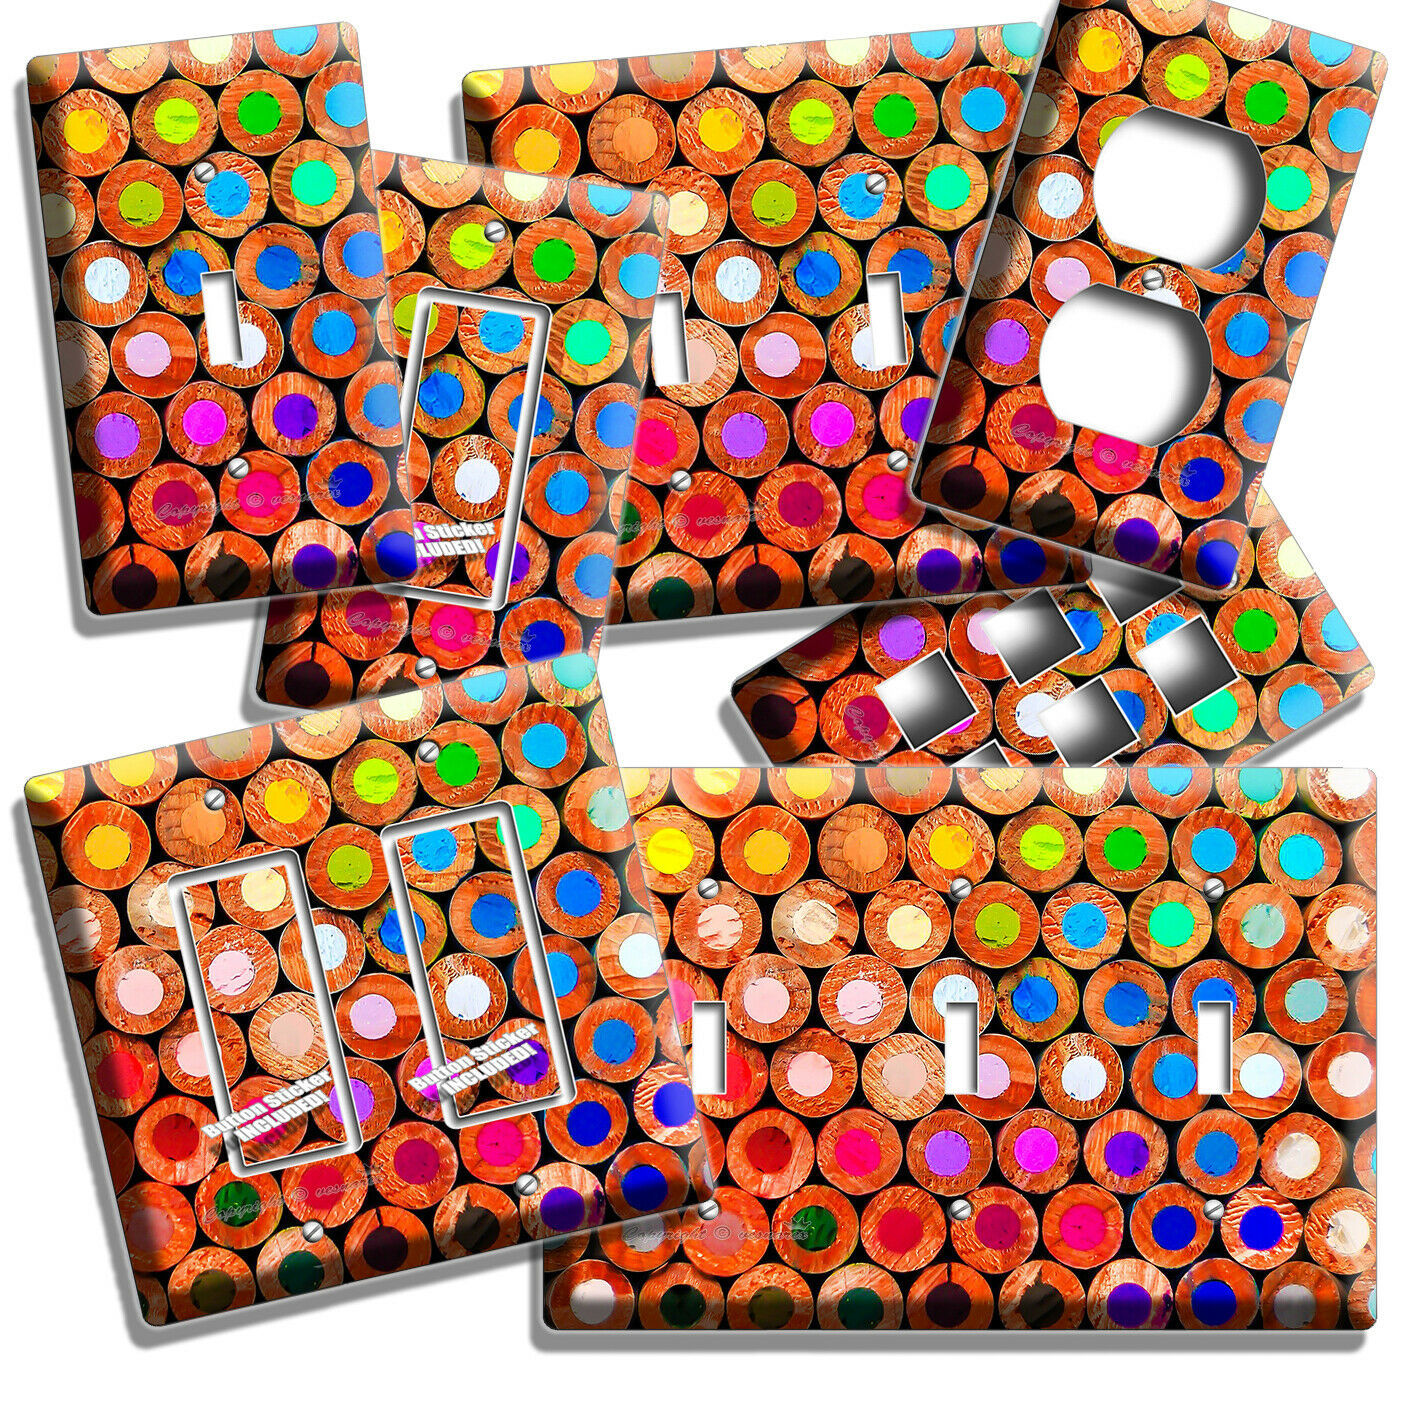 COLORFUL COLOR PENCILS BACKS LIGHT SWITCH OUTLET PLATE NEW ART STODIO ROOM DECOR